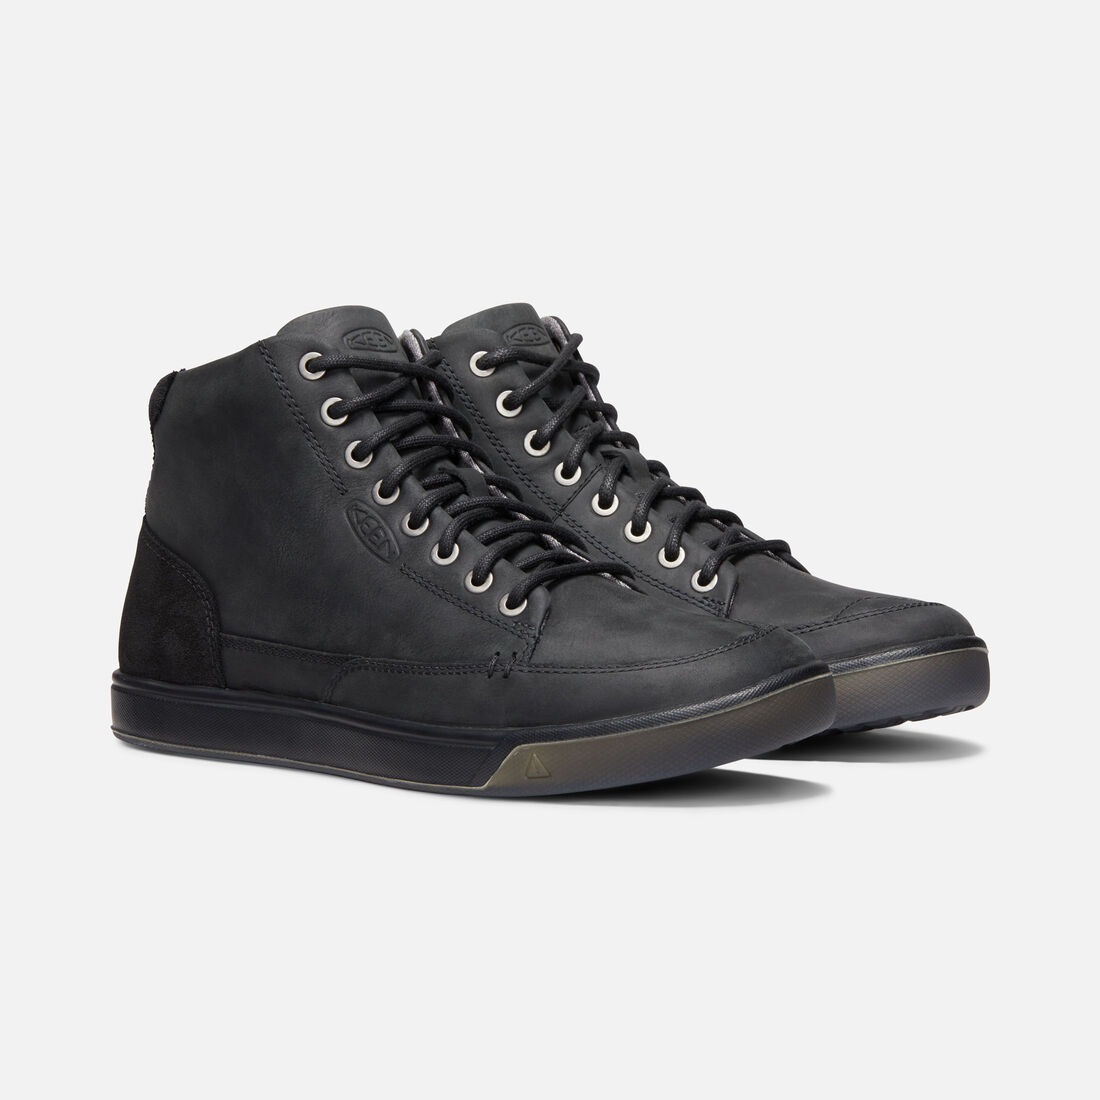 50869b5a9e324 Men's Glenhaven Mid Sneaker Boots - Leather Lace-Up Sneakers | KEEN ...